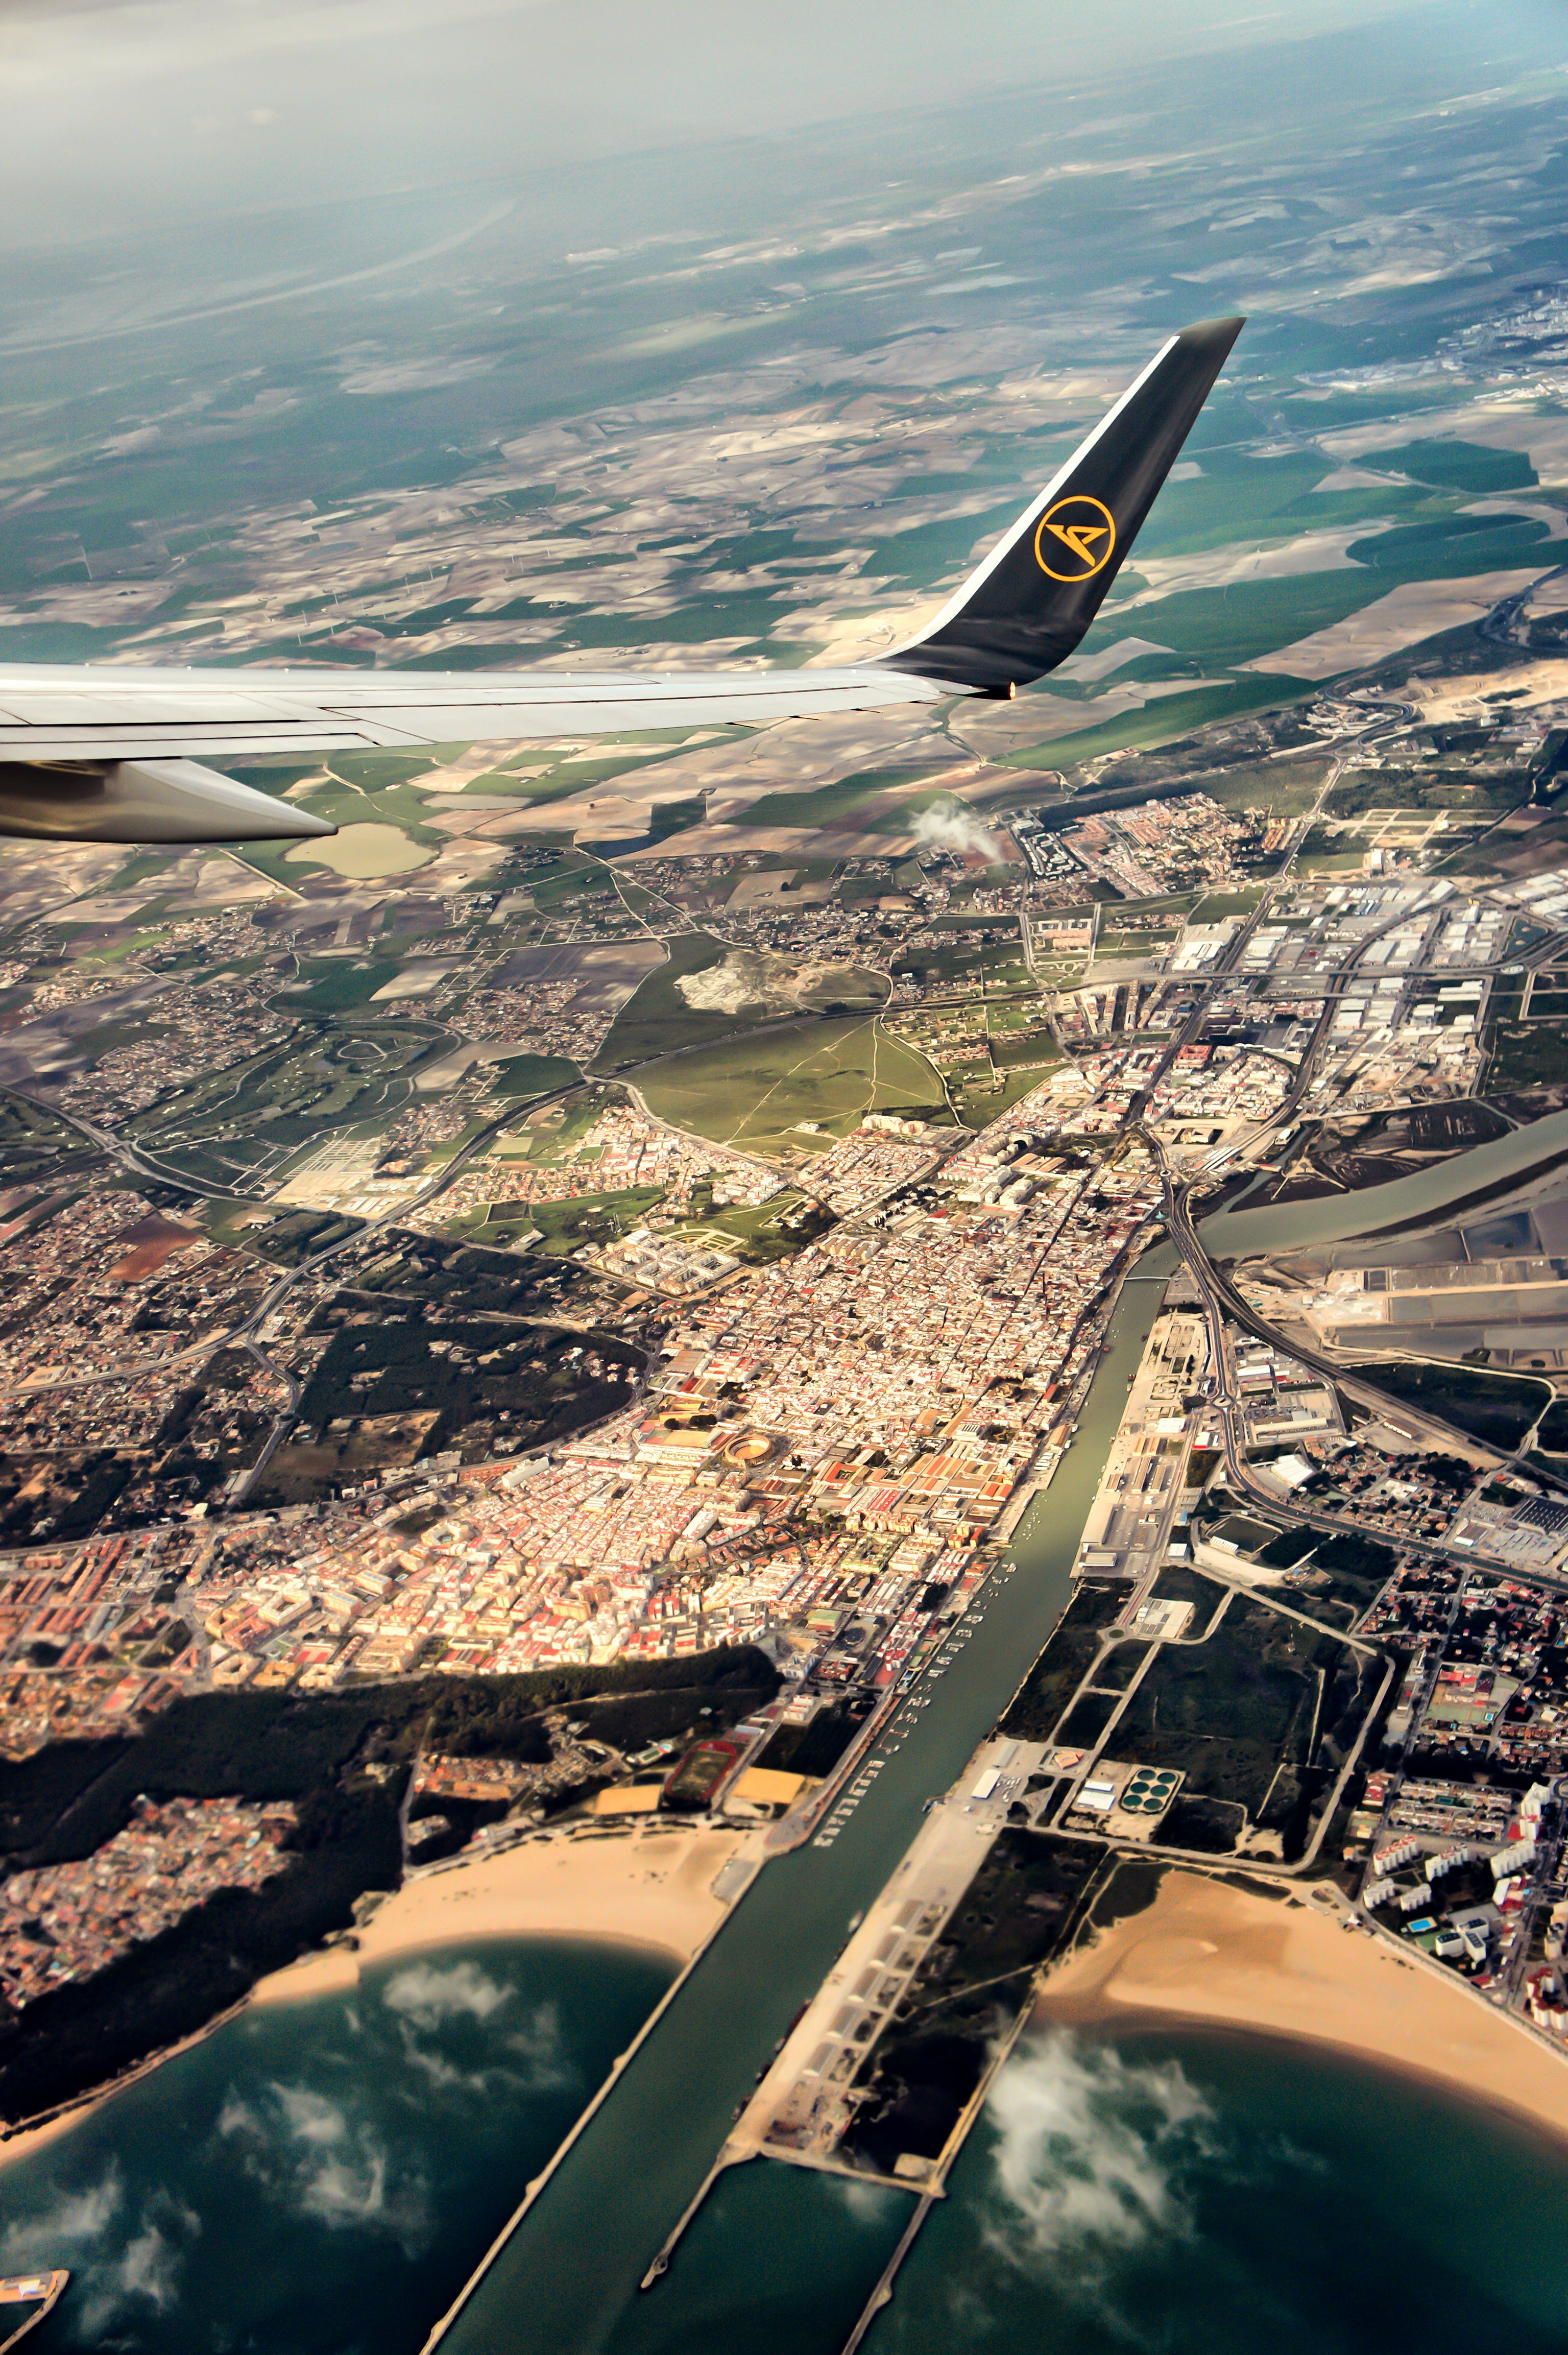 Kostenloses Stock Foto zu airplane, airplane wing, andalusia, curve